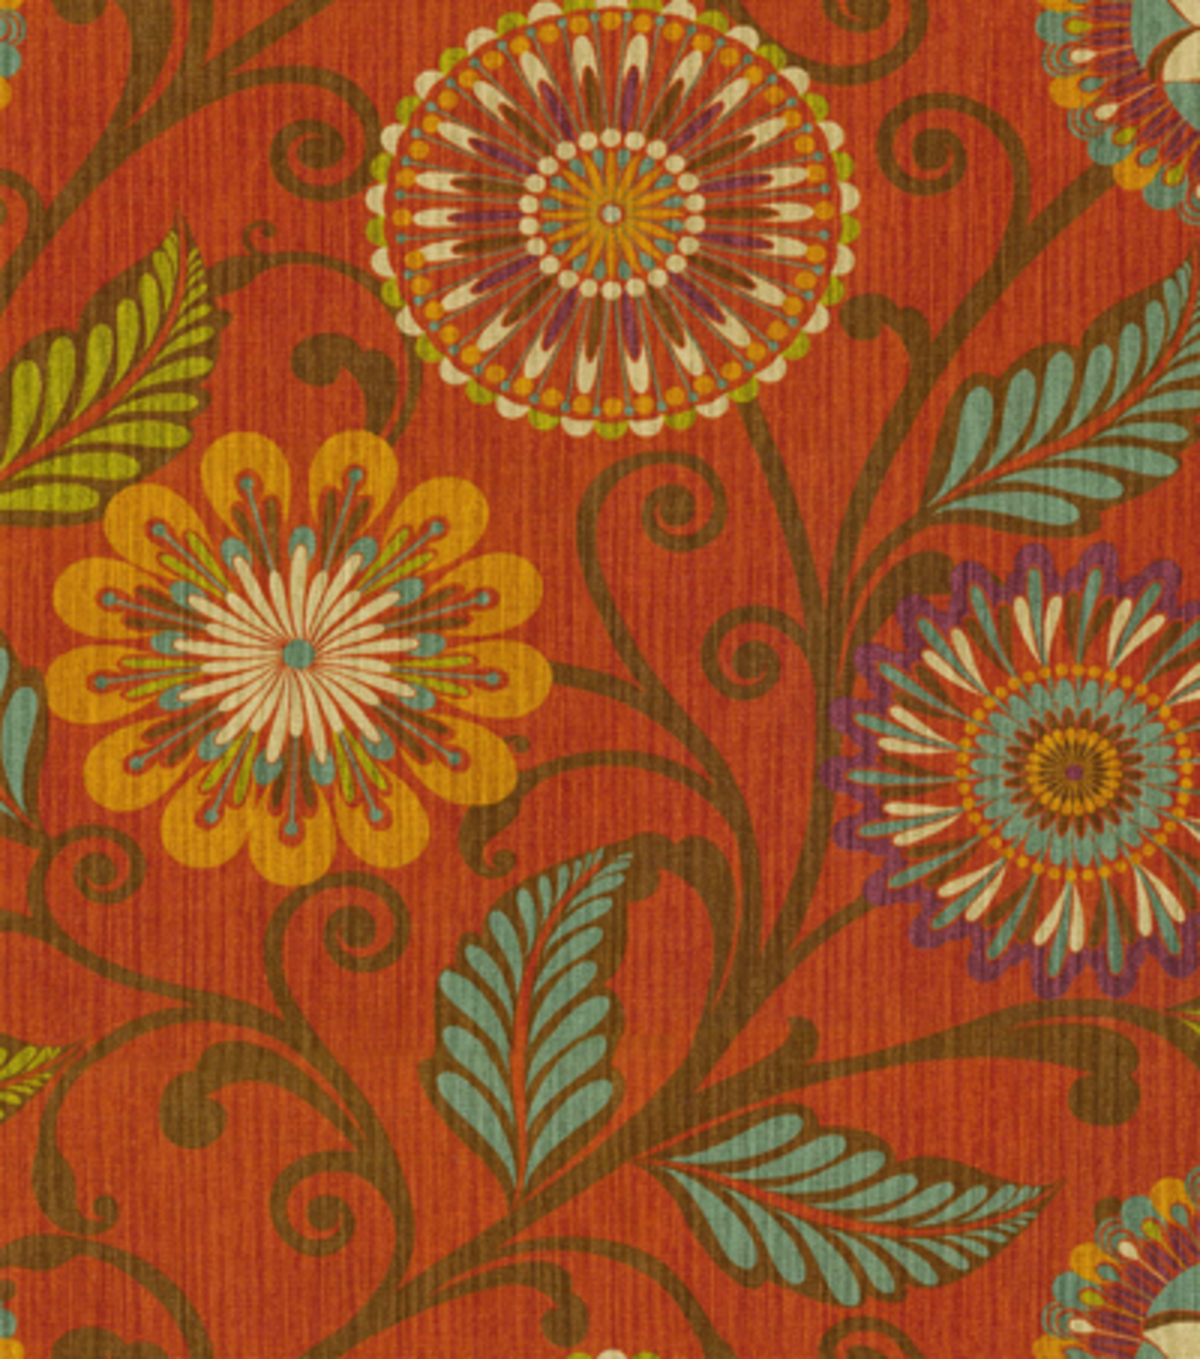 Home Decor Print Fabric- HGTV HOME Urban Blosson Harvest